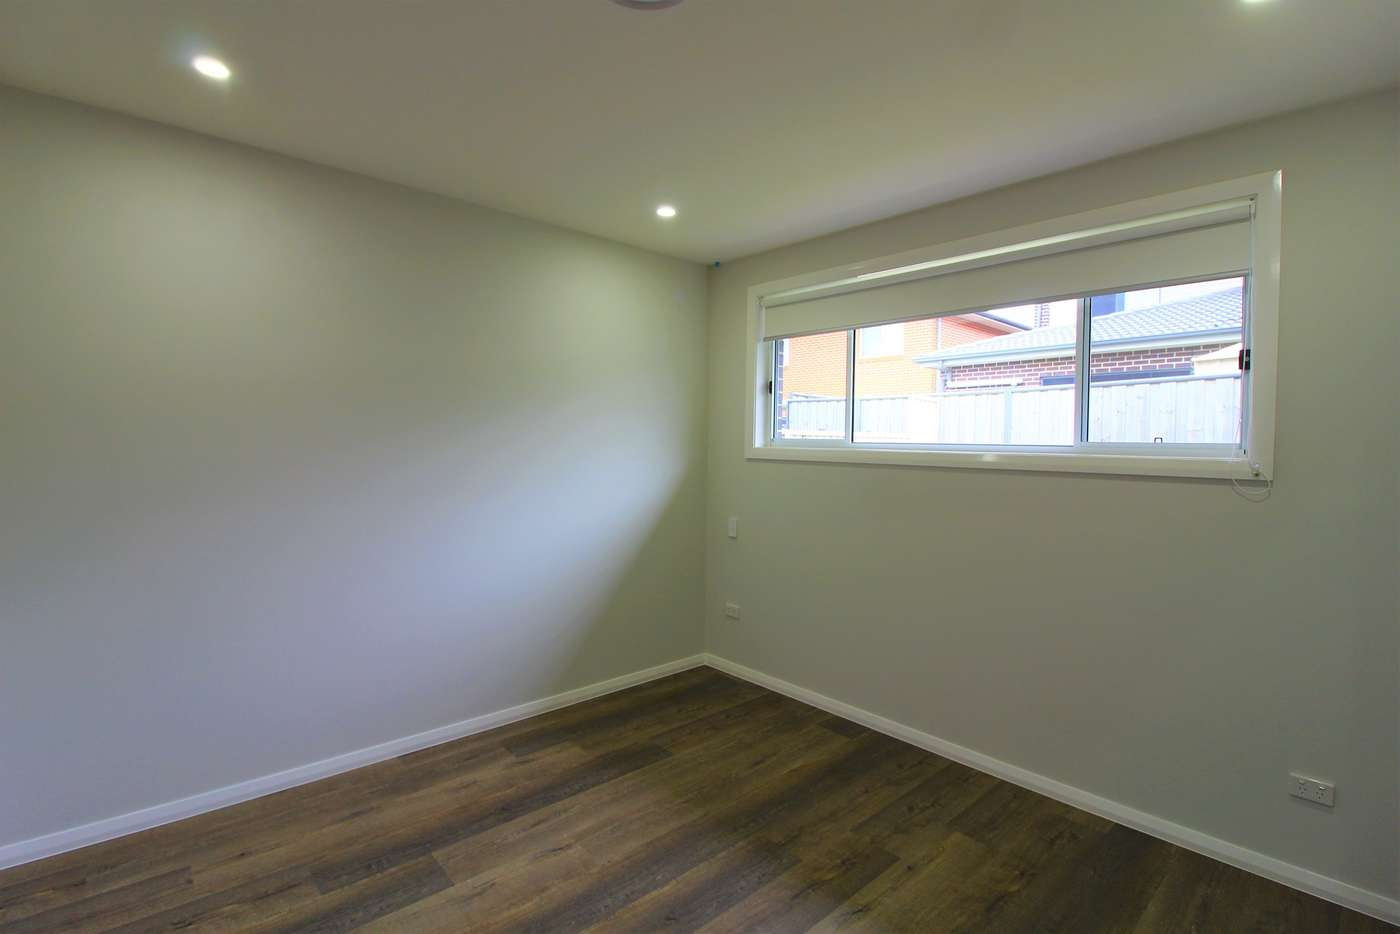 Seventh view of Homely house listing, 18 Bullaburra Street, The Ponds NSW 2769